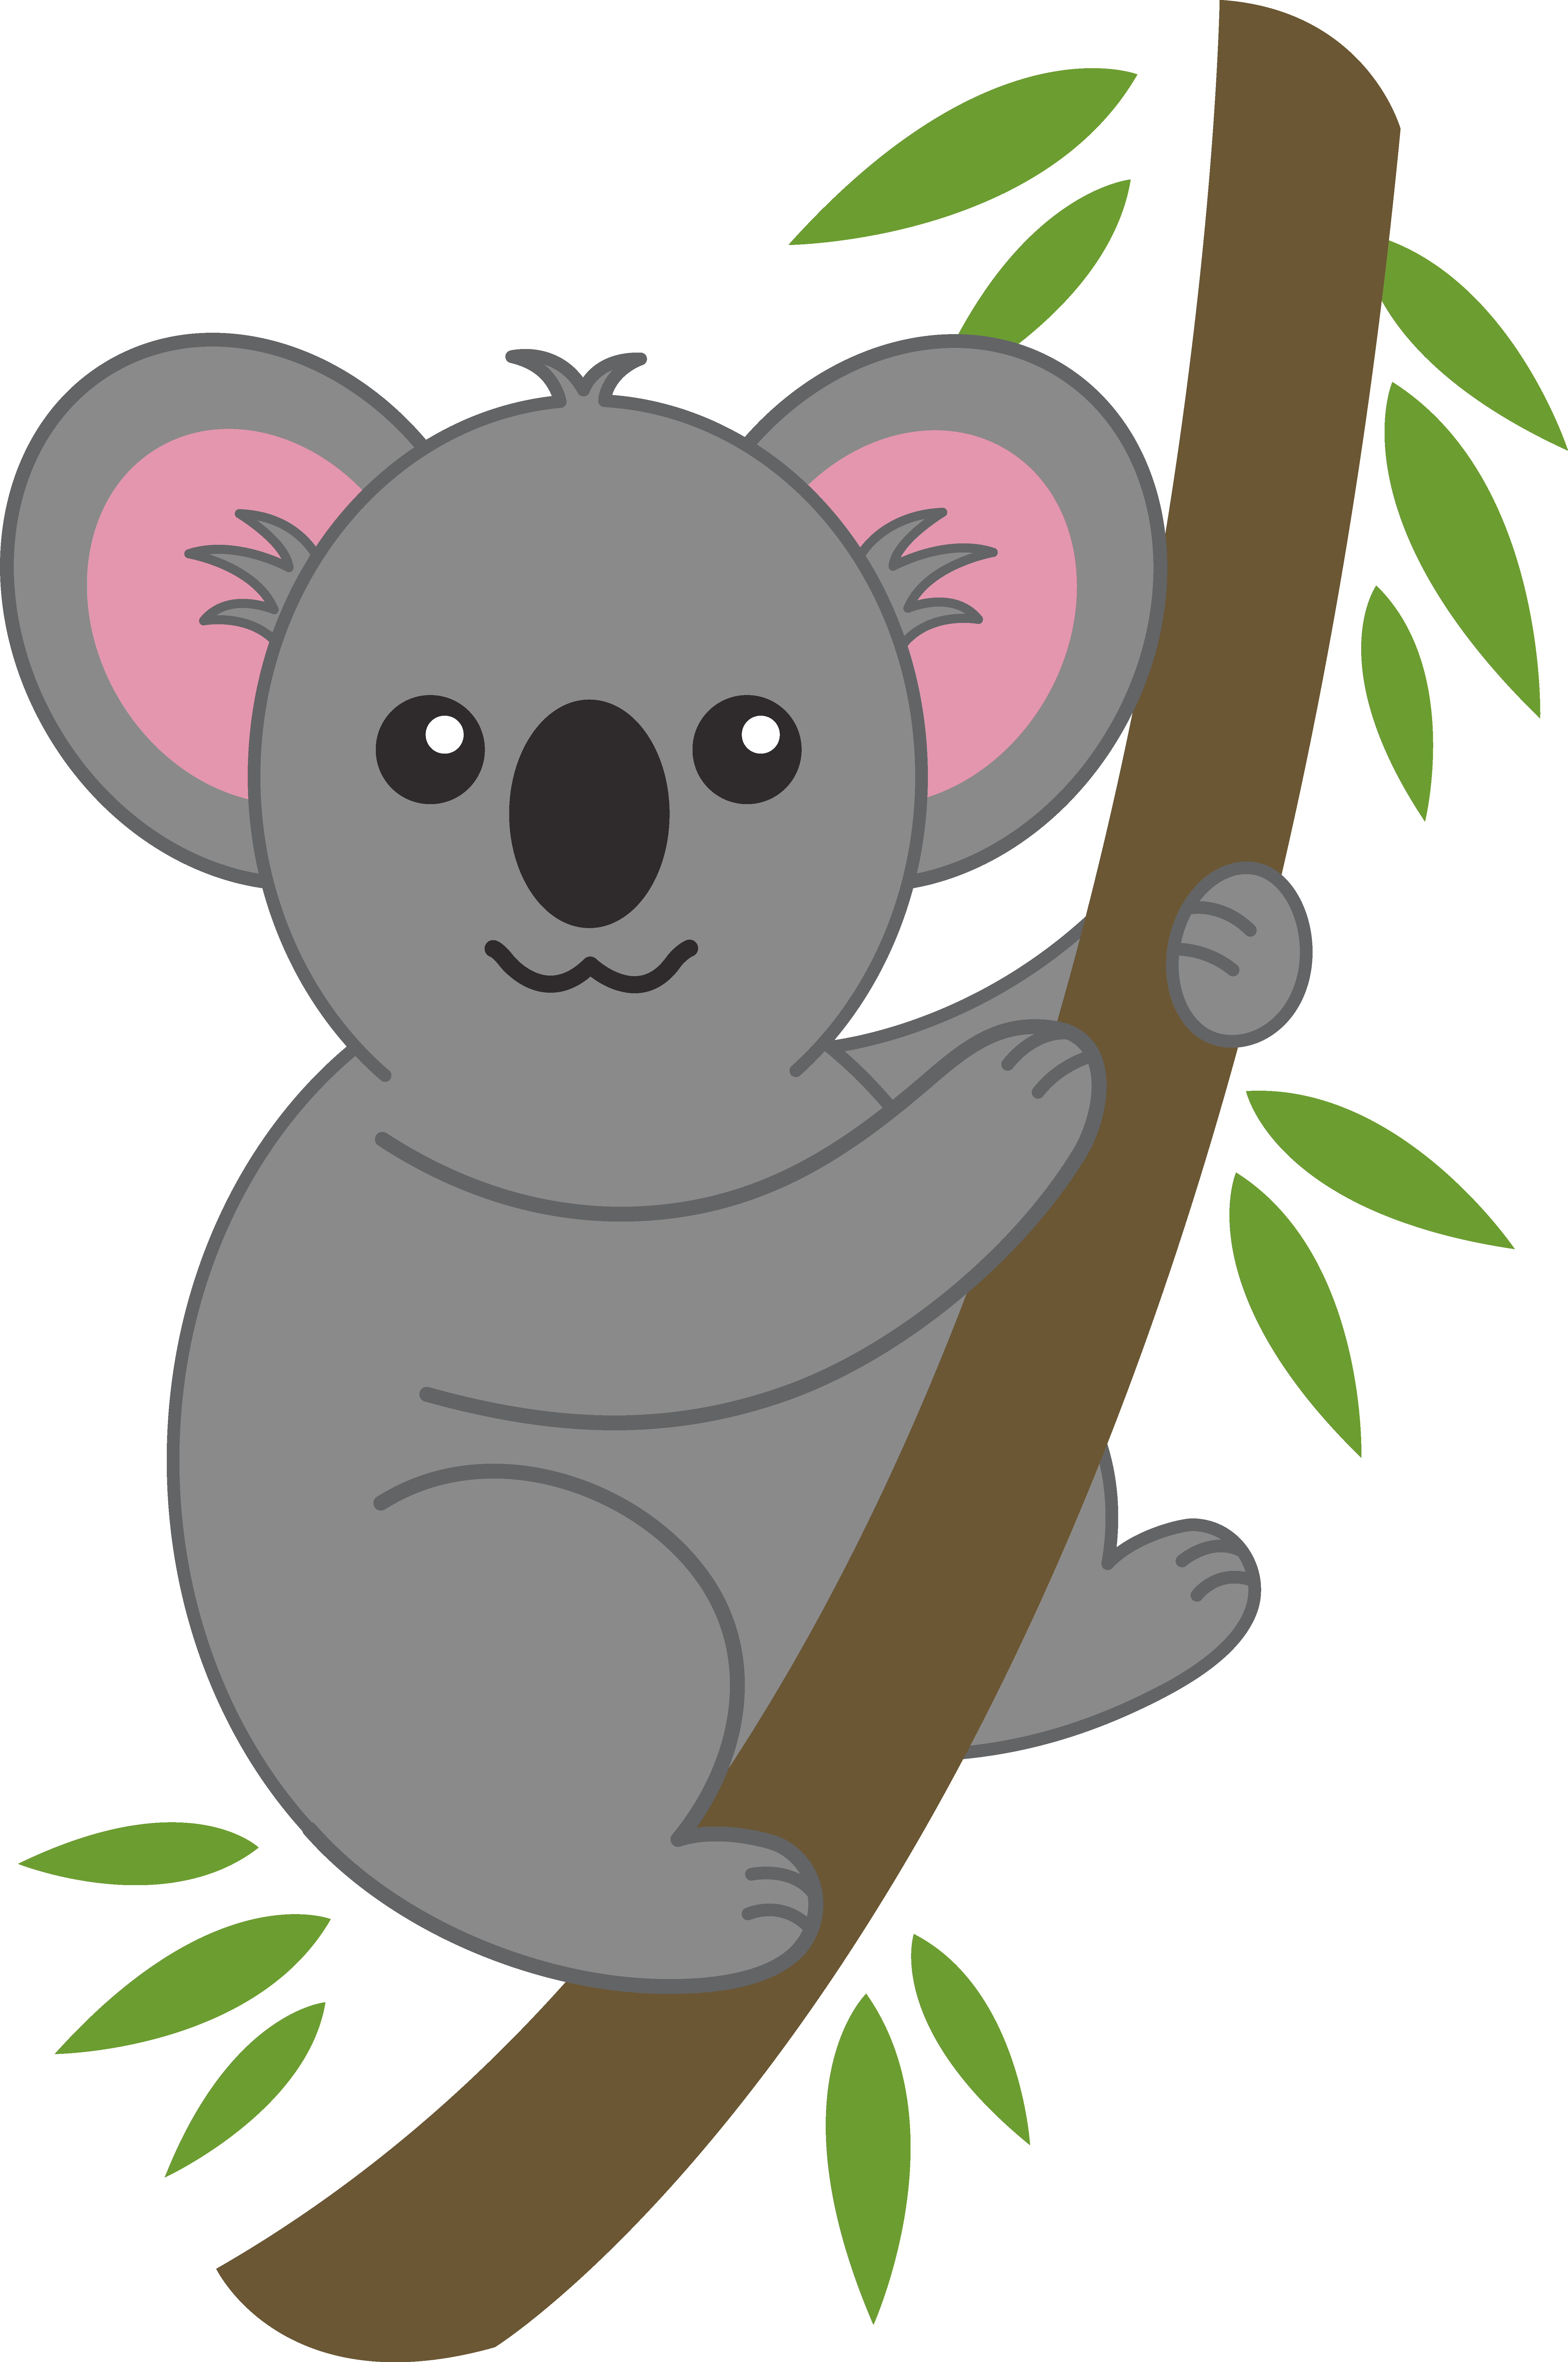 koala clipart transparent background